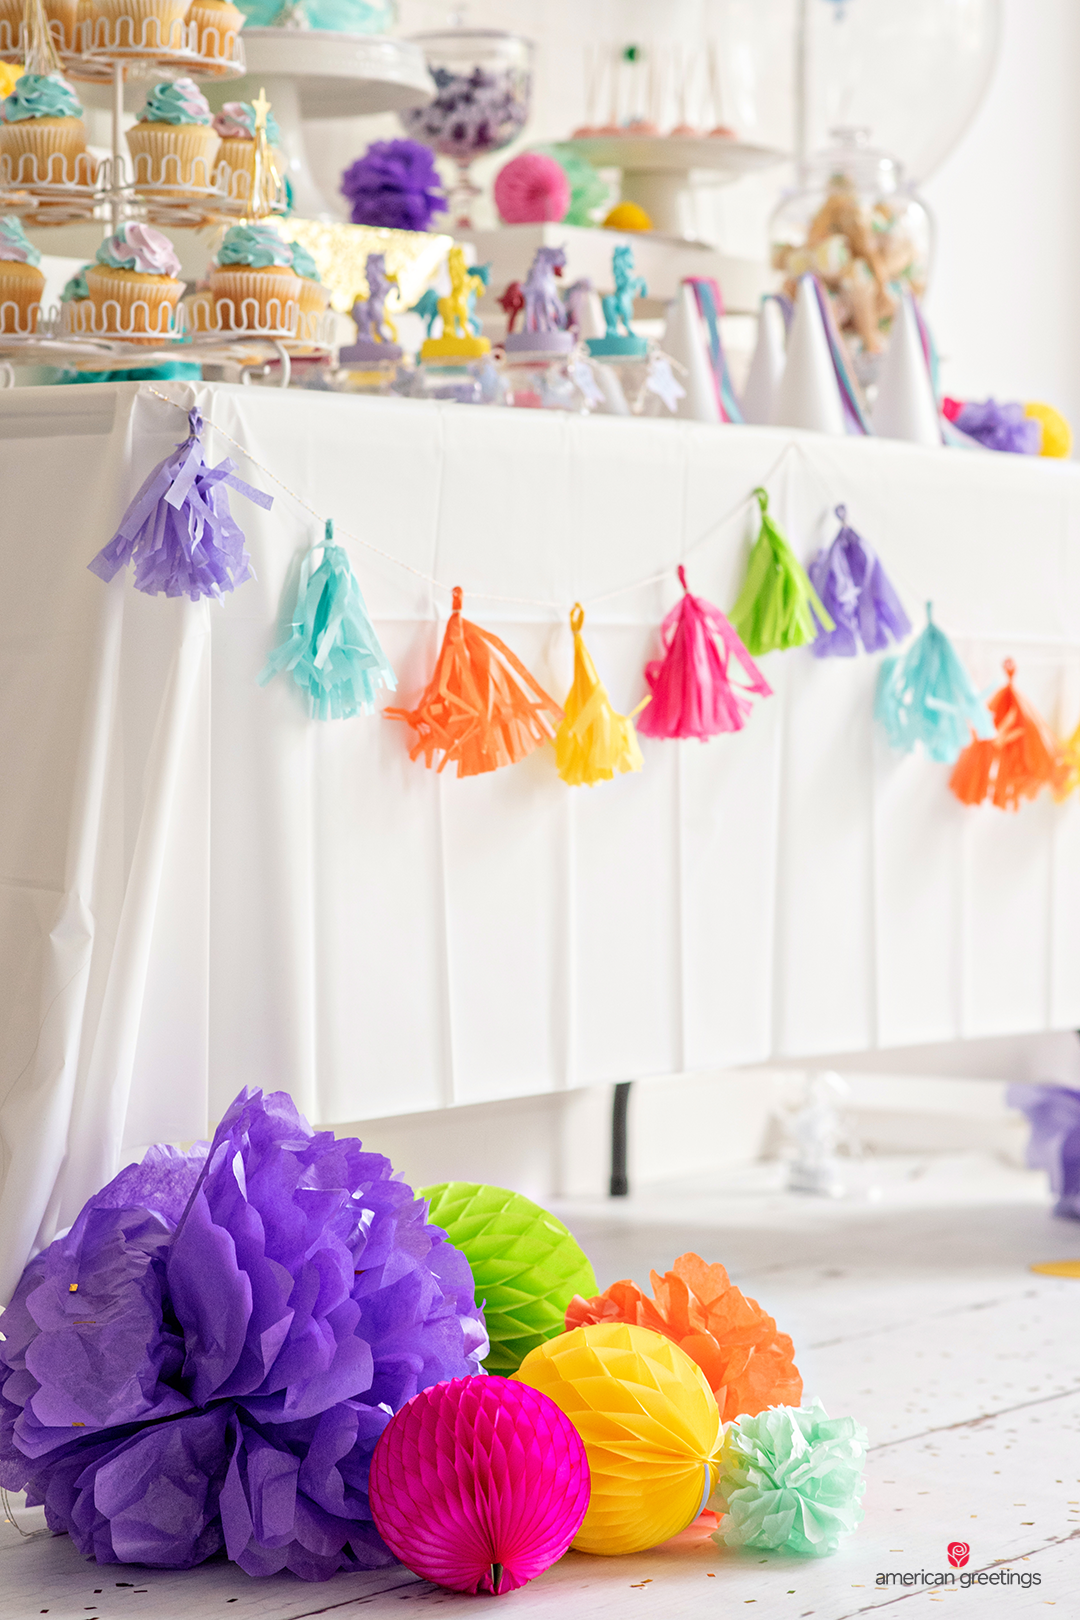 Colorful tissue papper pom-poms and honeycombs in various size next to a table on the floor.